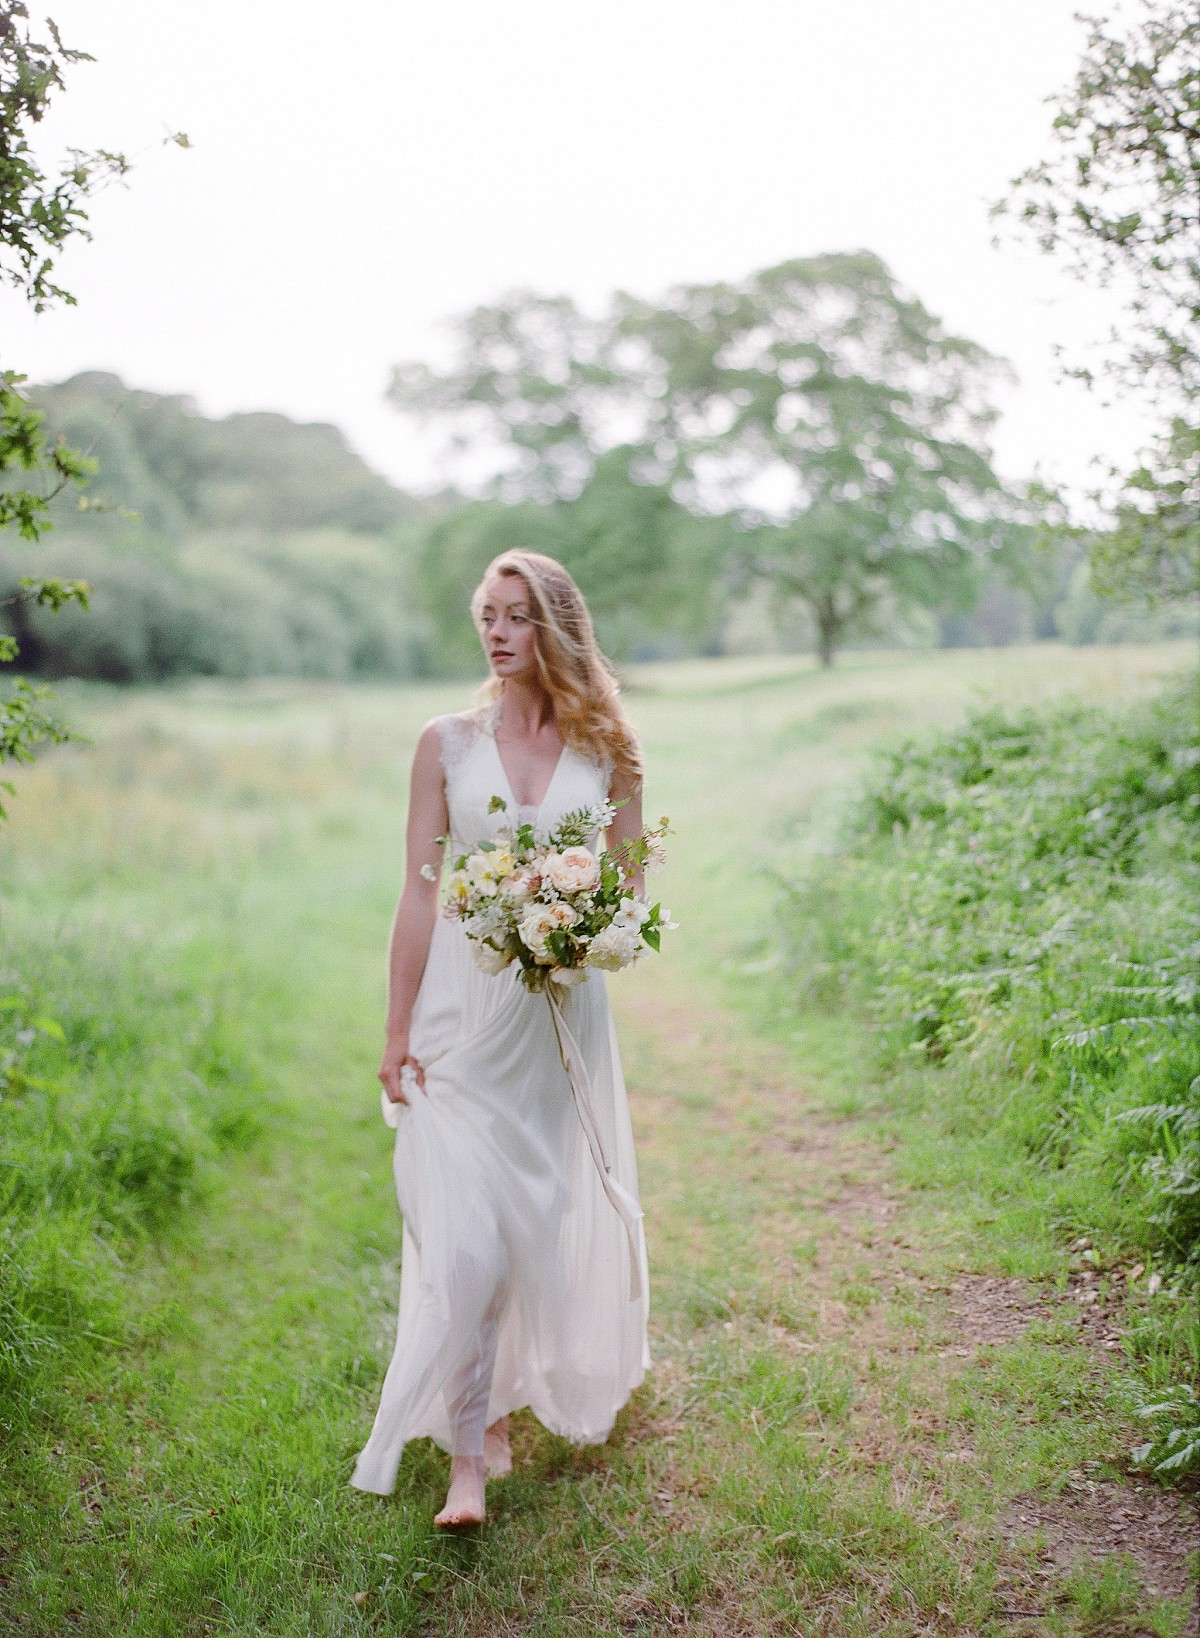 Outdoor English Country Garden Elopement Ideas